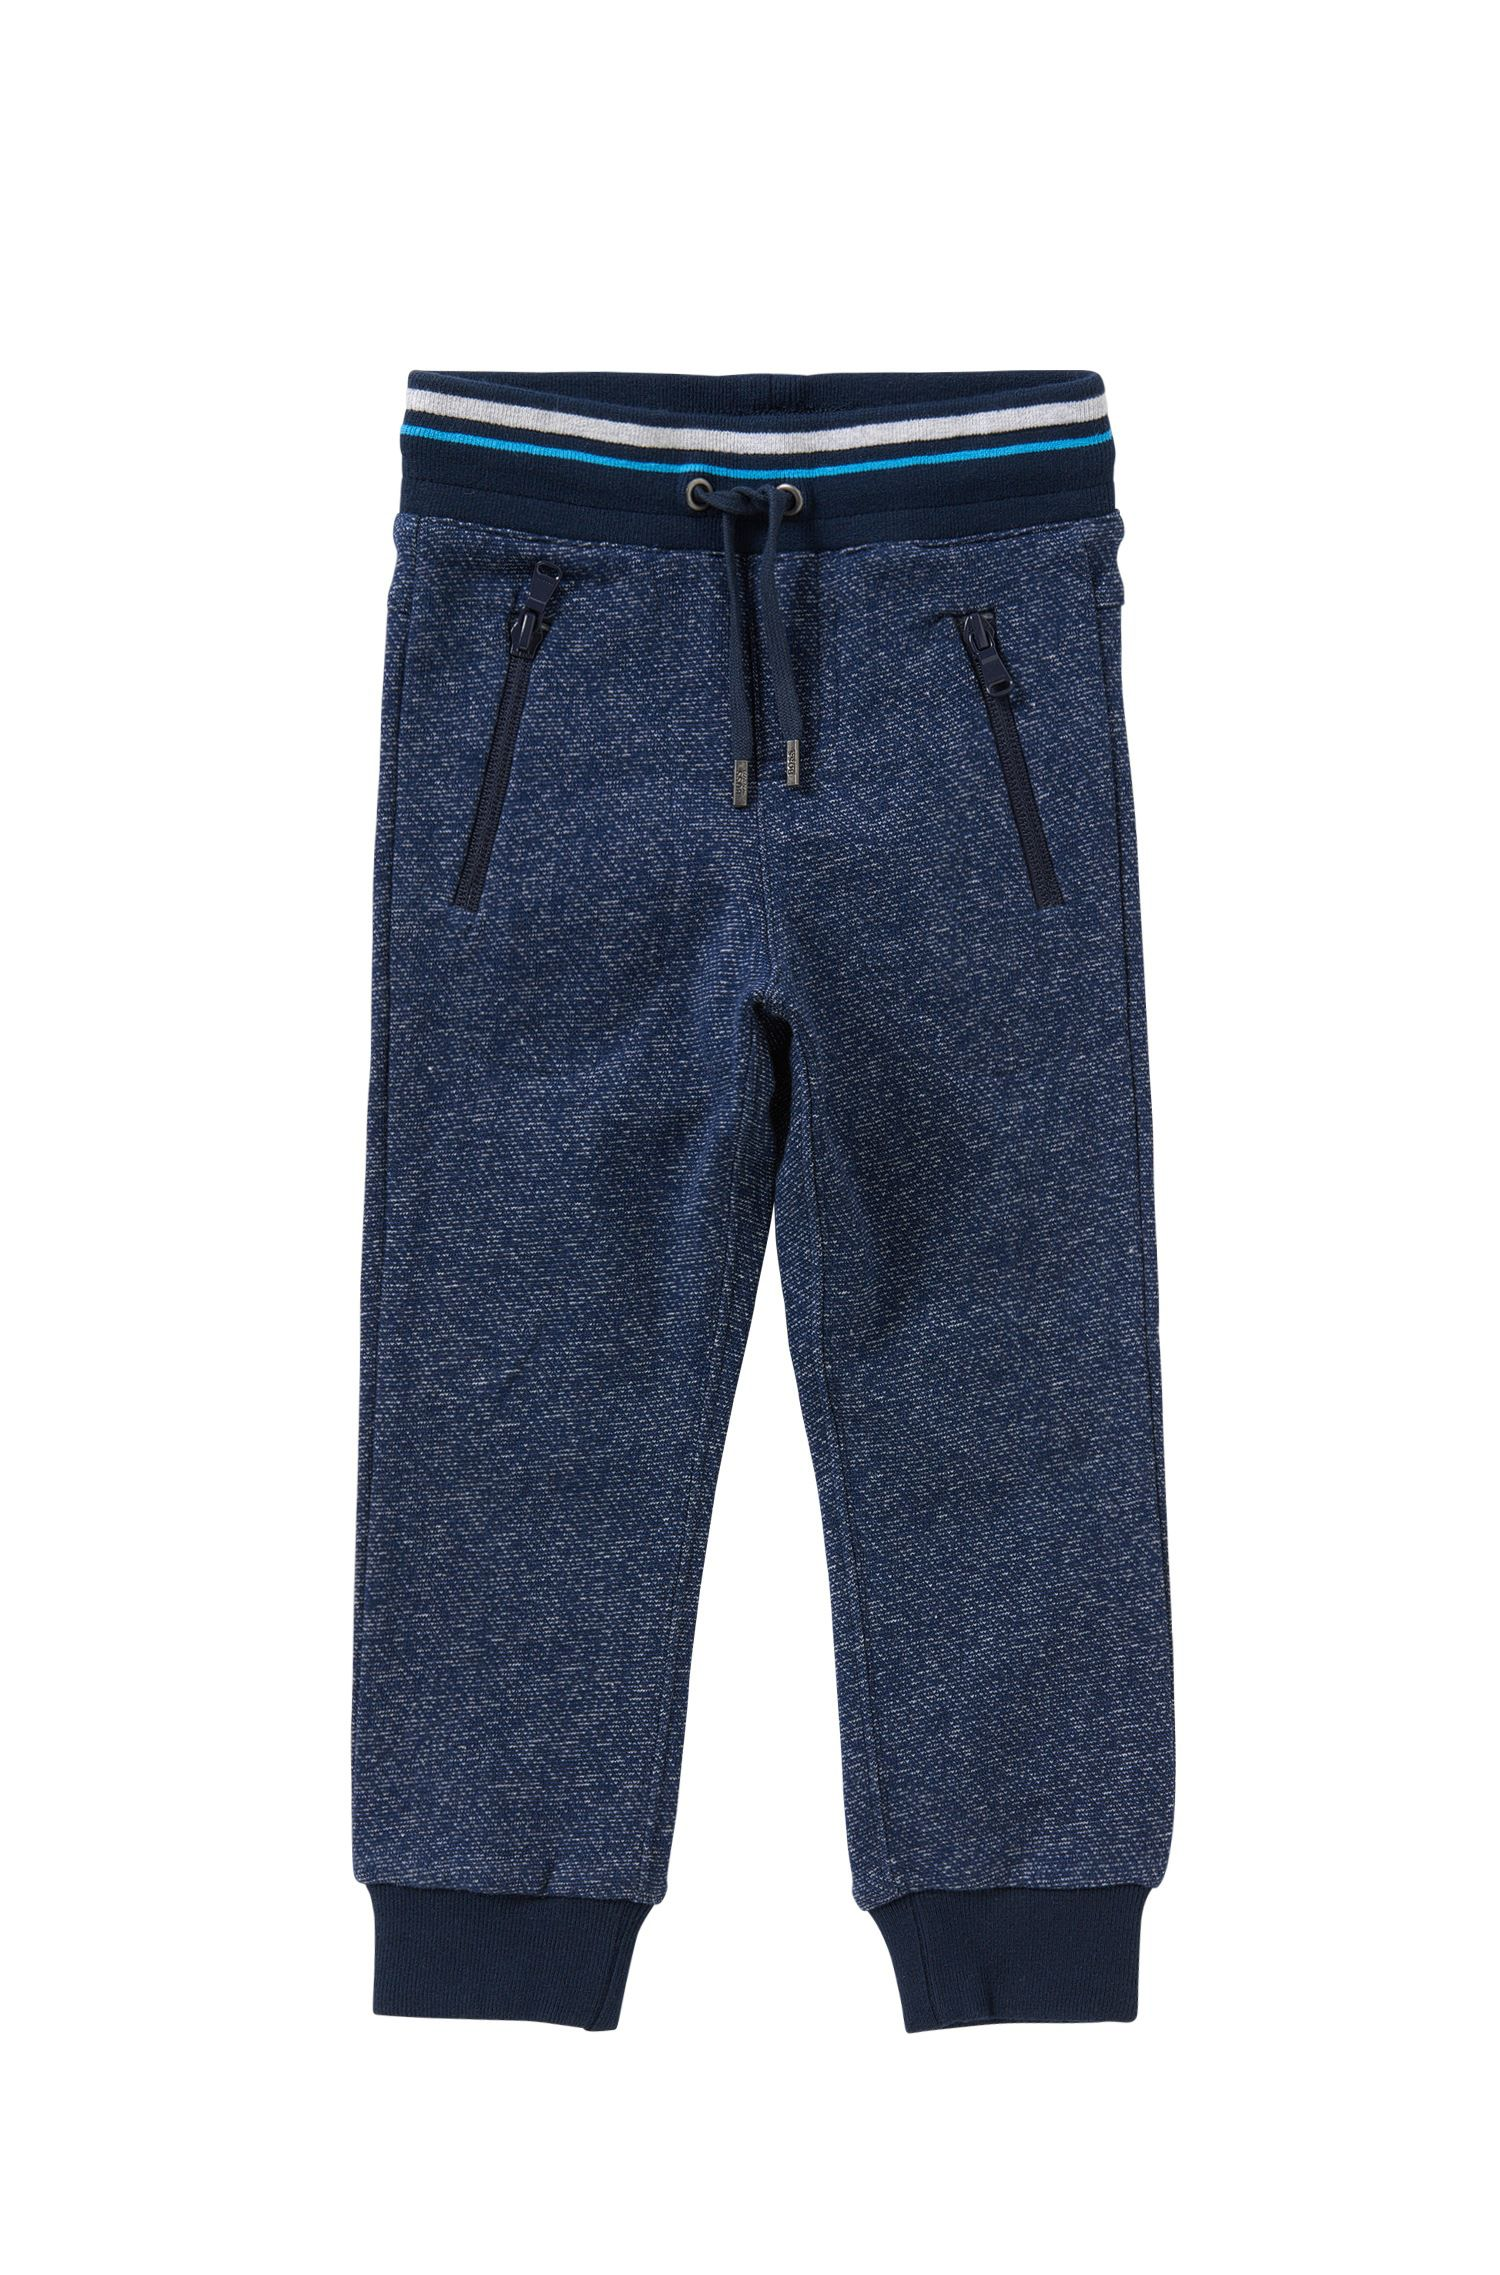 Kids' tracksuit bottoms in cotton with a drawstring waistband: 'J24392'